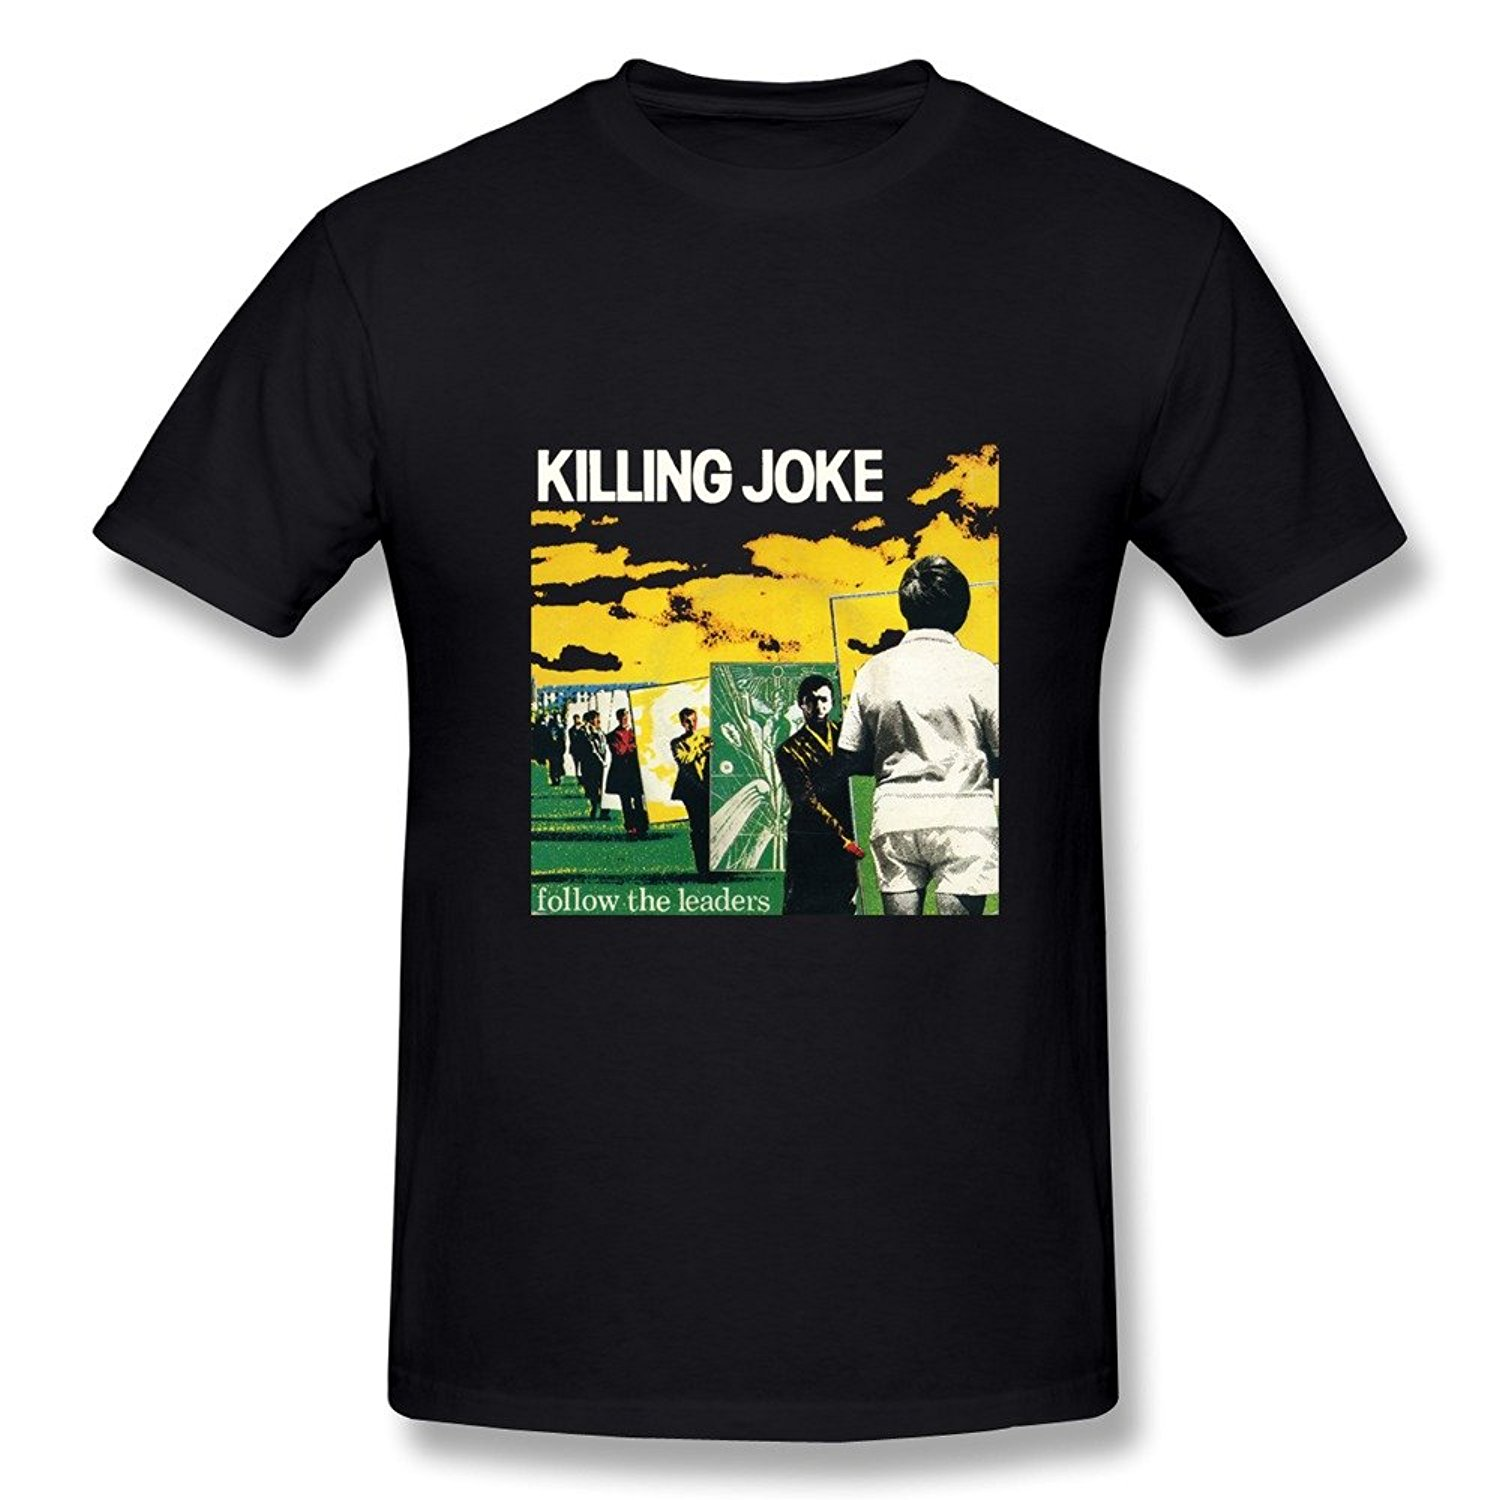 New Killing Joke Wardance Pssyche Punk Band Mens White T-Shirt Size S To 3XL 100% Cotton Men Women T Shirt Tees